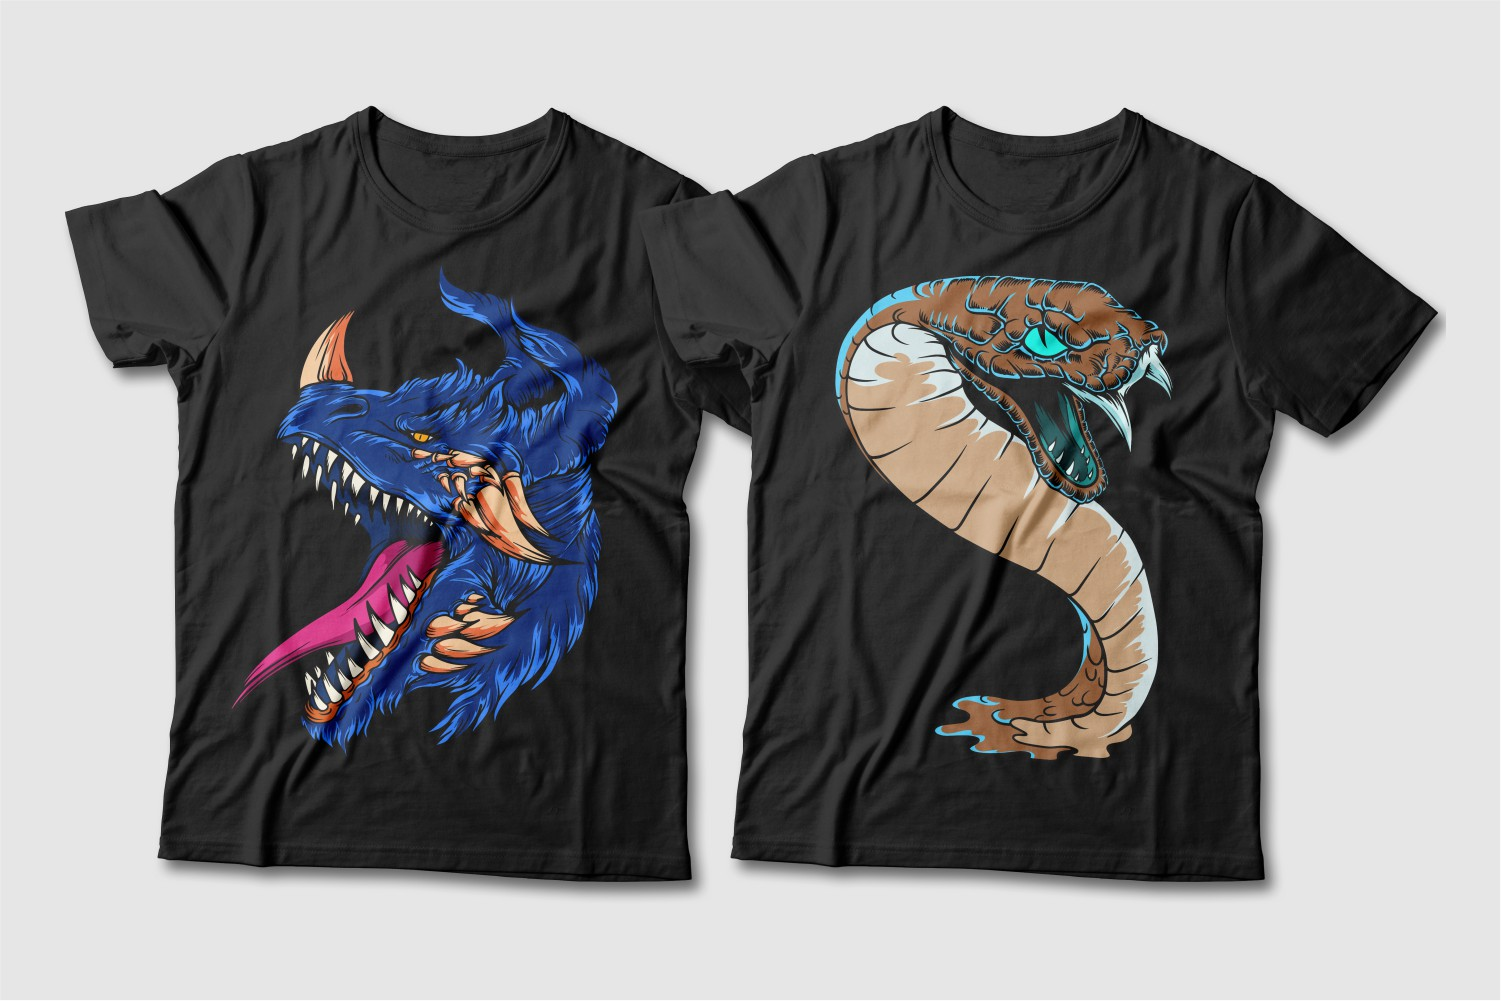 Black crew-neck tees featuring a blue dragon with a crimson tongue and a beige snake with a turquoise hue.